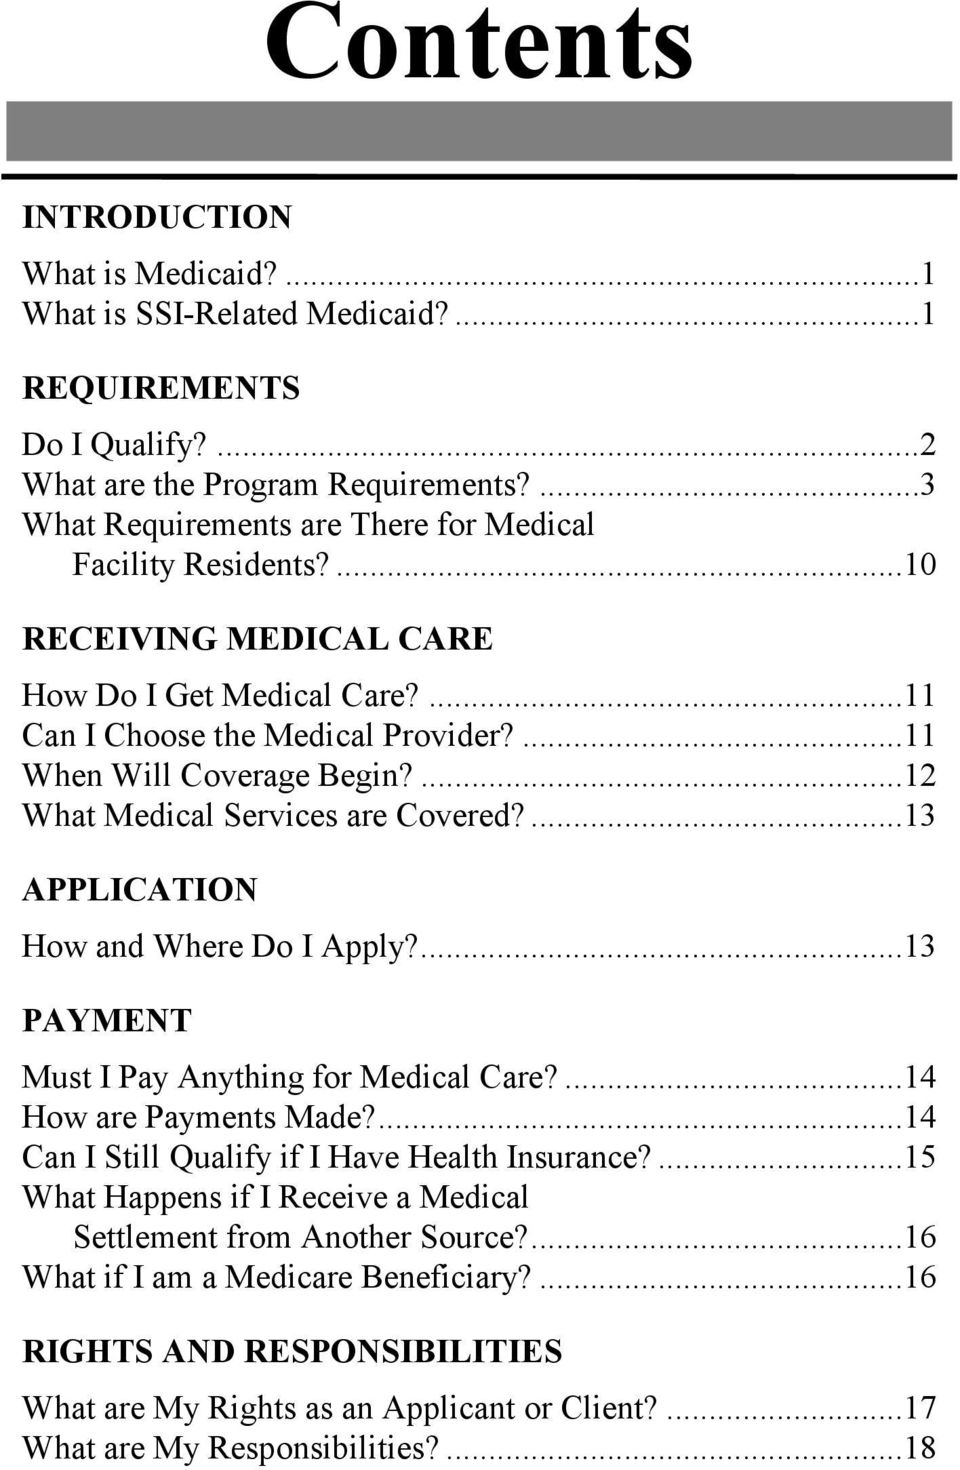 ...12 What Medical Services are Covered?...13 APPLICATION How and Where Do I Apply?...13 PAYMENT Must I Pay Anything for Medical Care?...14 How are Payments Made?